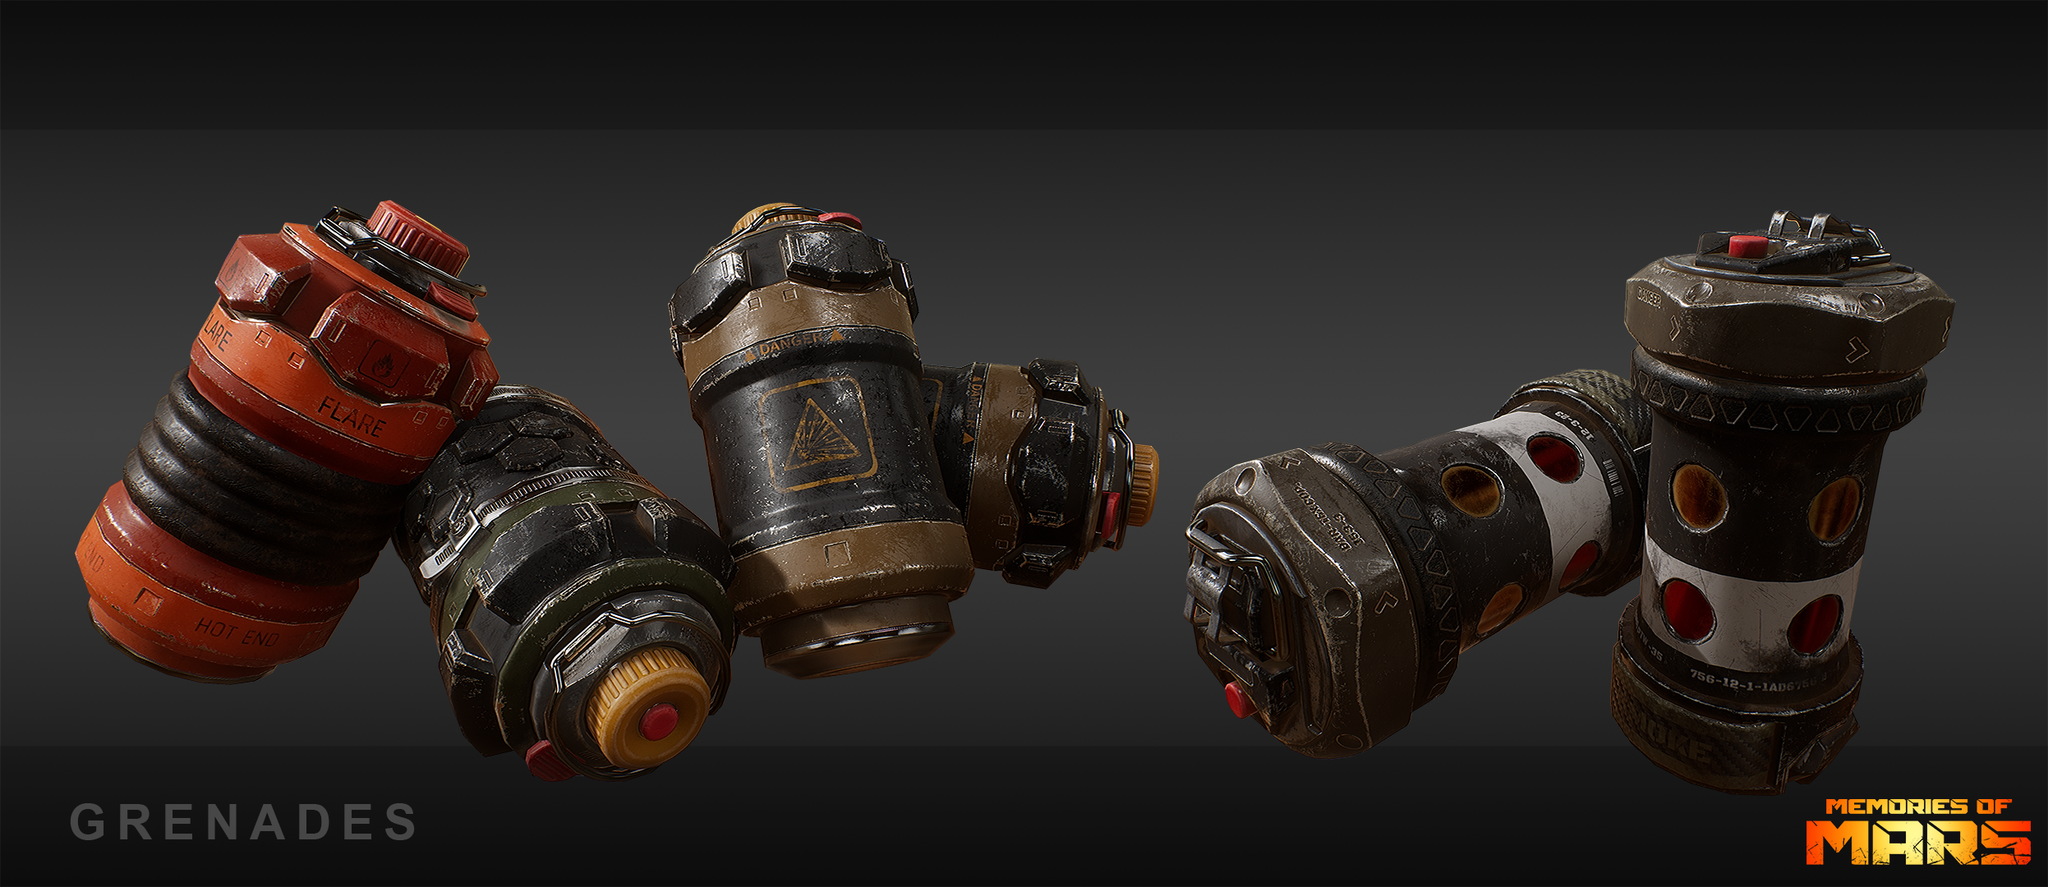 Flare, frag, explosive and smoke grenade for Memories of Mars. First person ingame model.